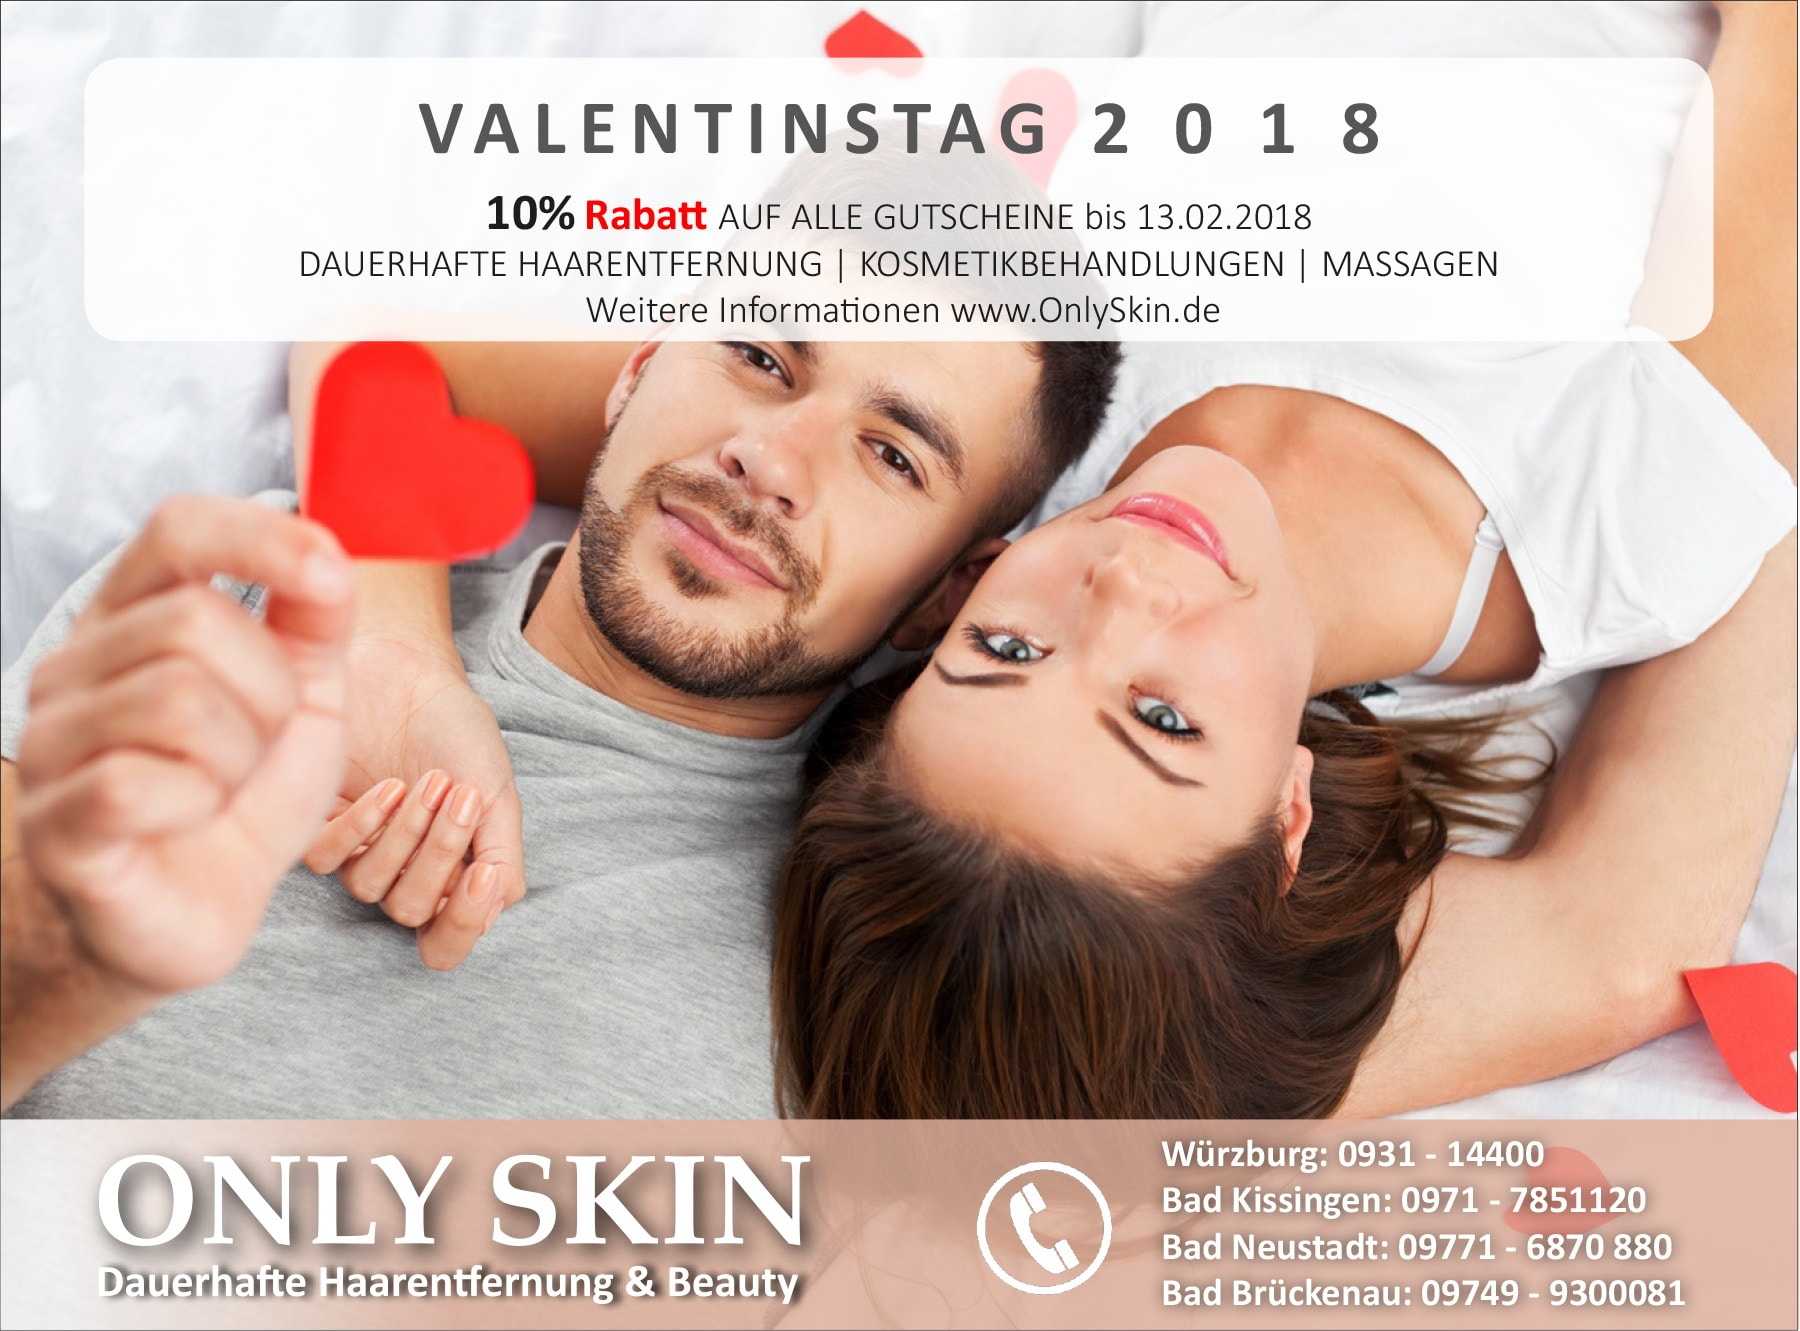 ONLY SKIN - Dauerhafte Haarentfernung in Würzburg, Bad Kissingen, Bad Neustadt - Studenten Rabatt